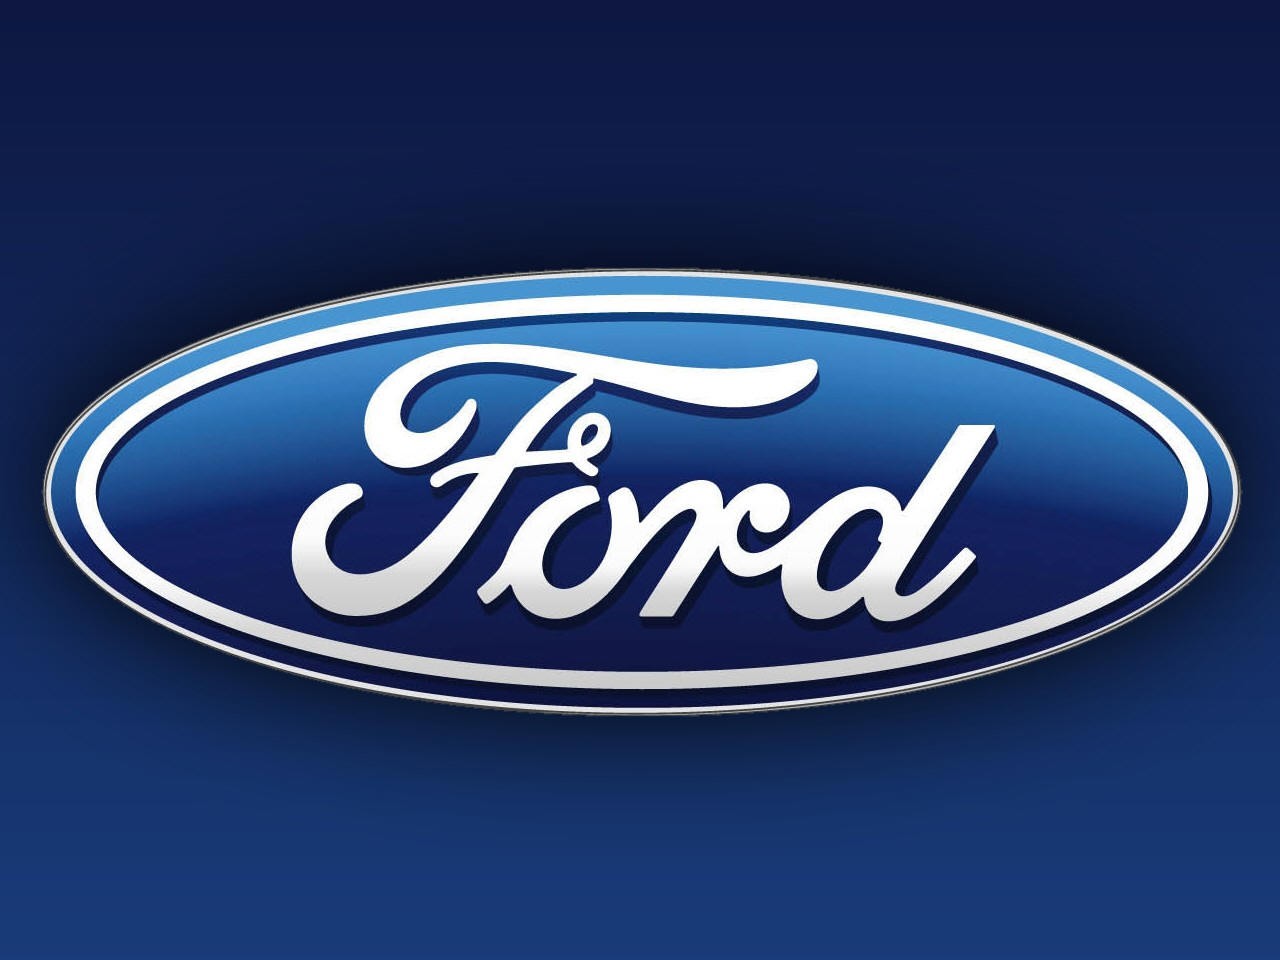 All Car Brands List Of Car Brand Names And Logos